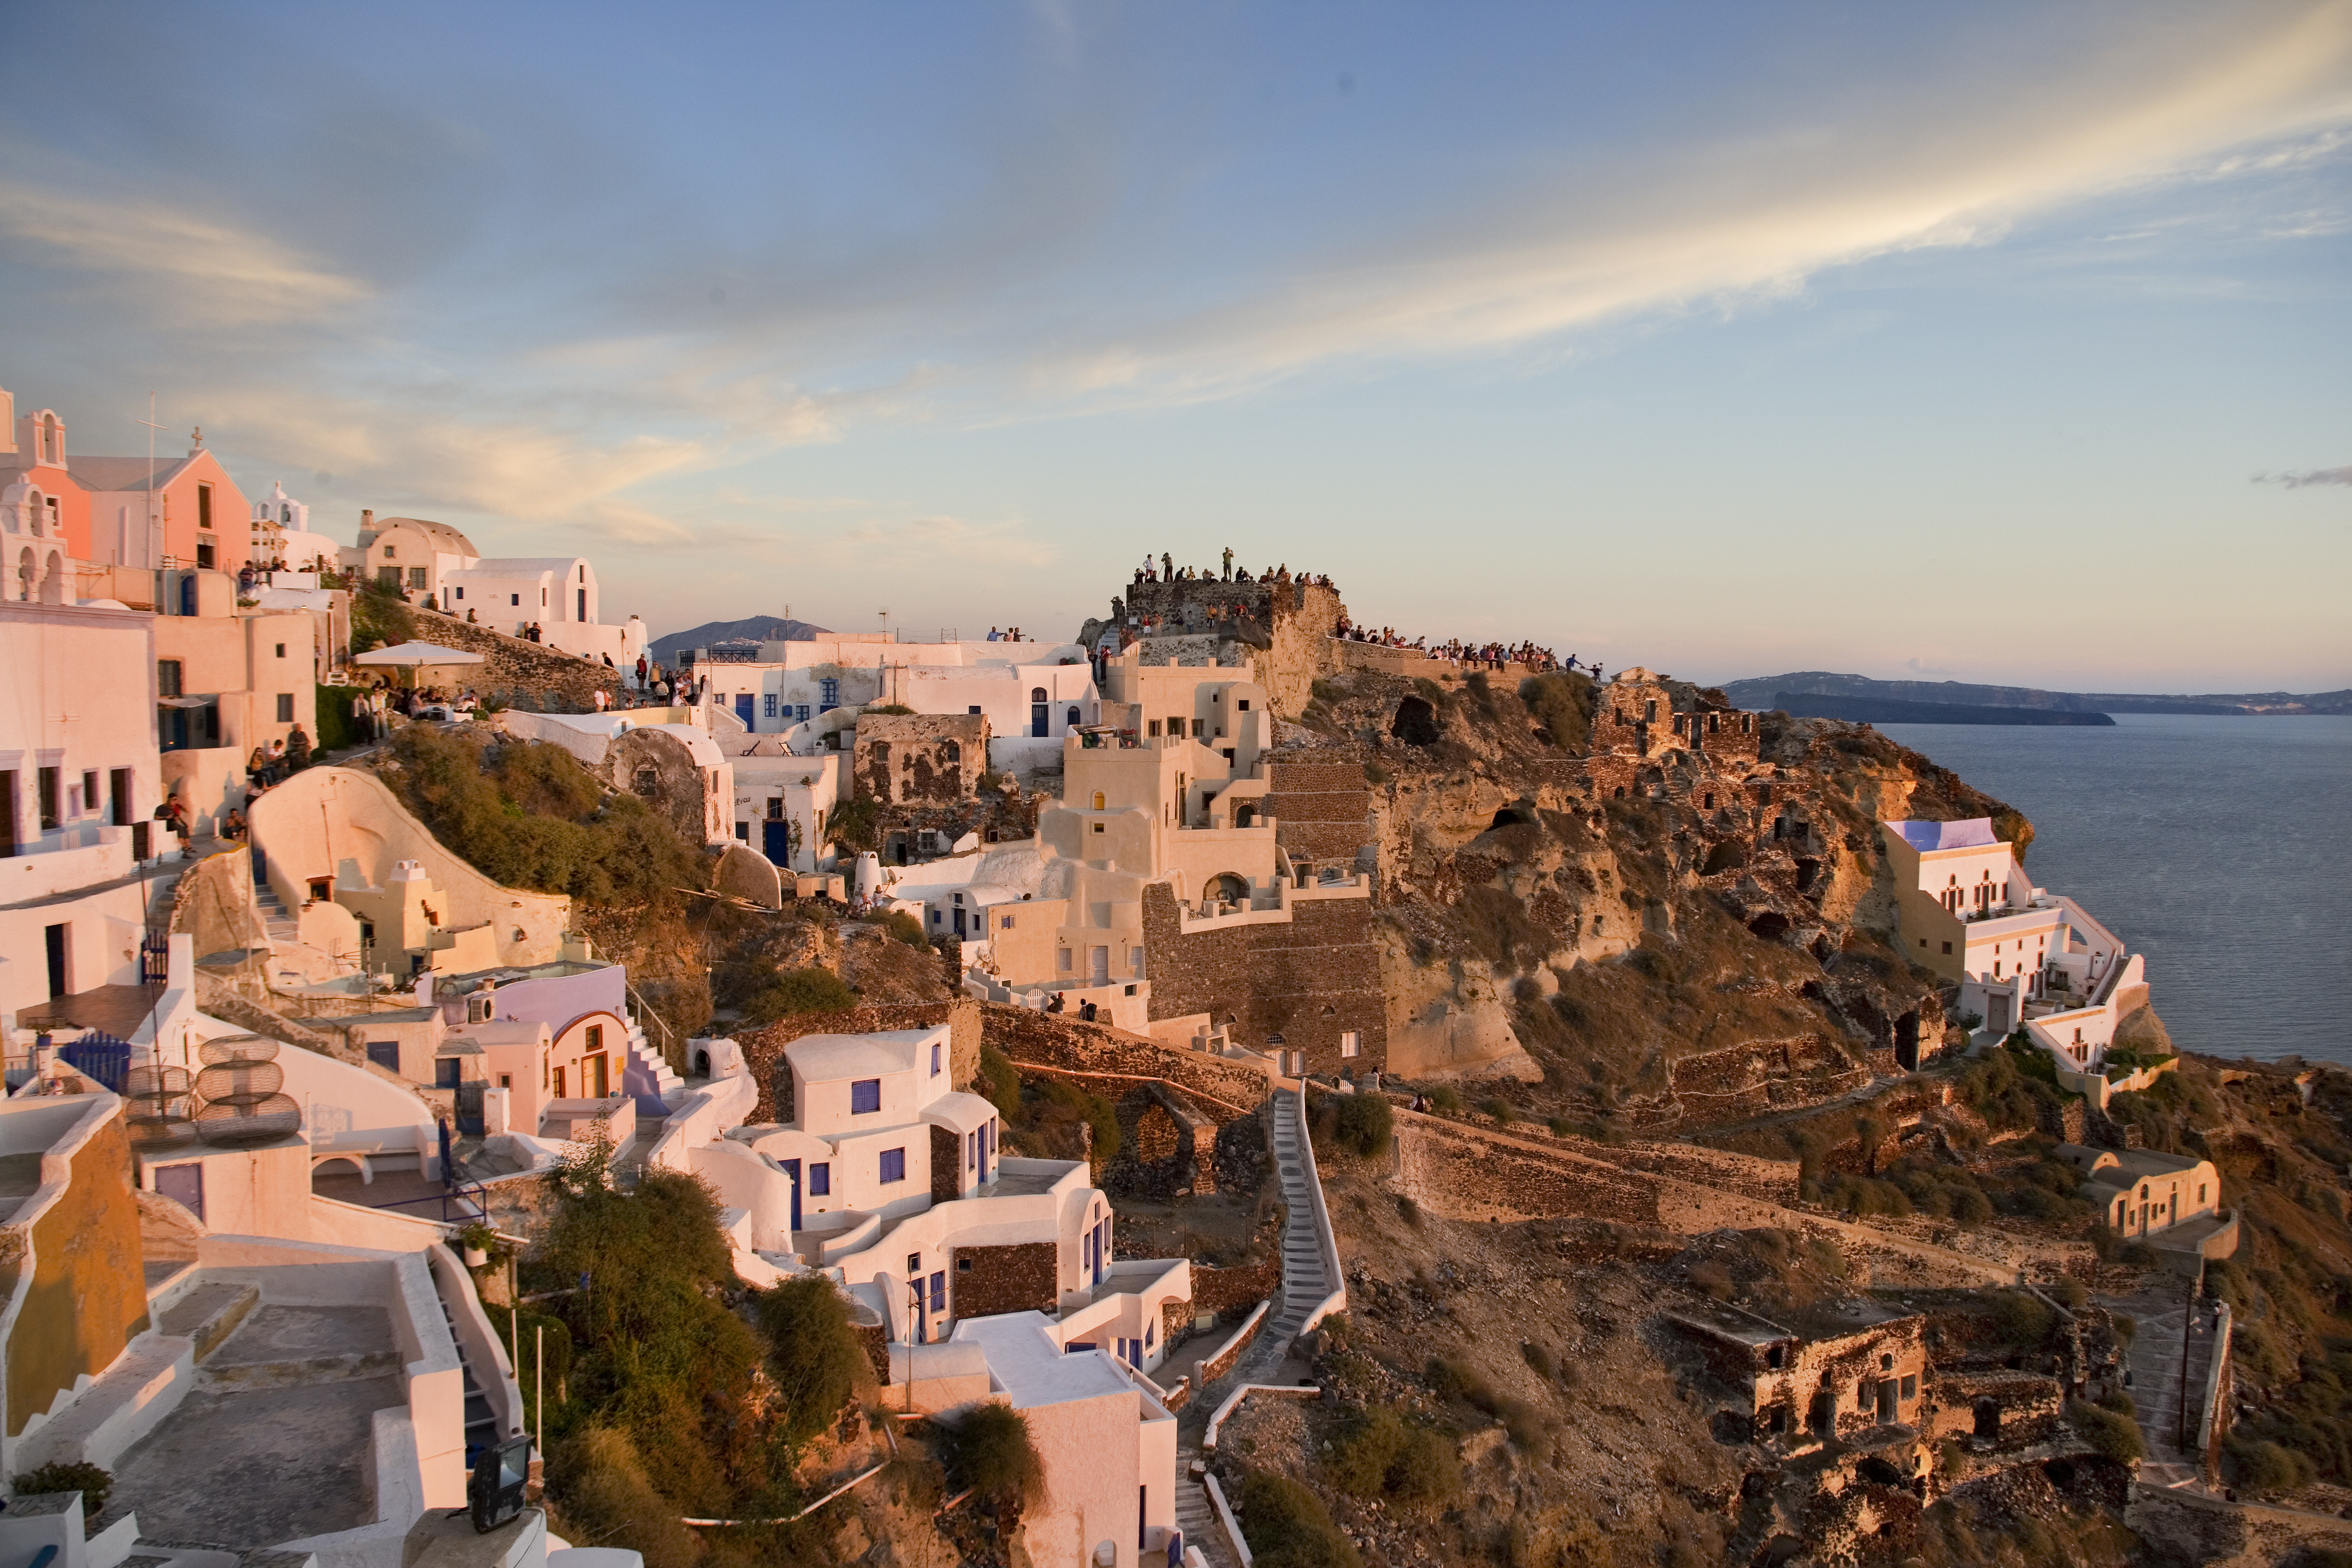 Tourists watching the sunset in Oia, the most famous of all villages of Santorini.